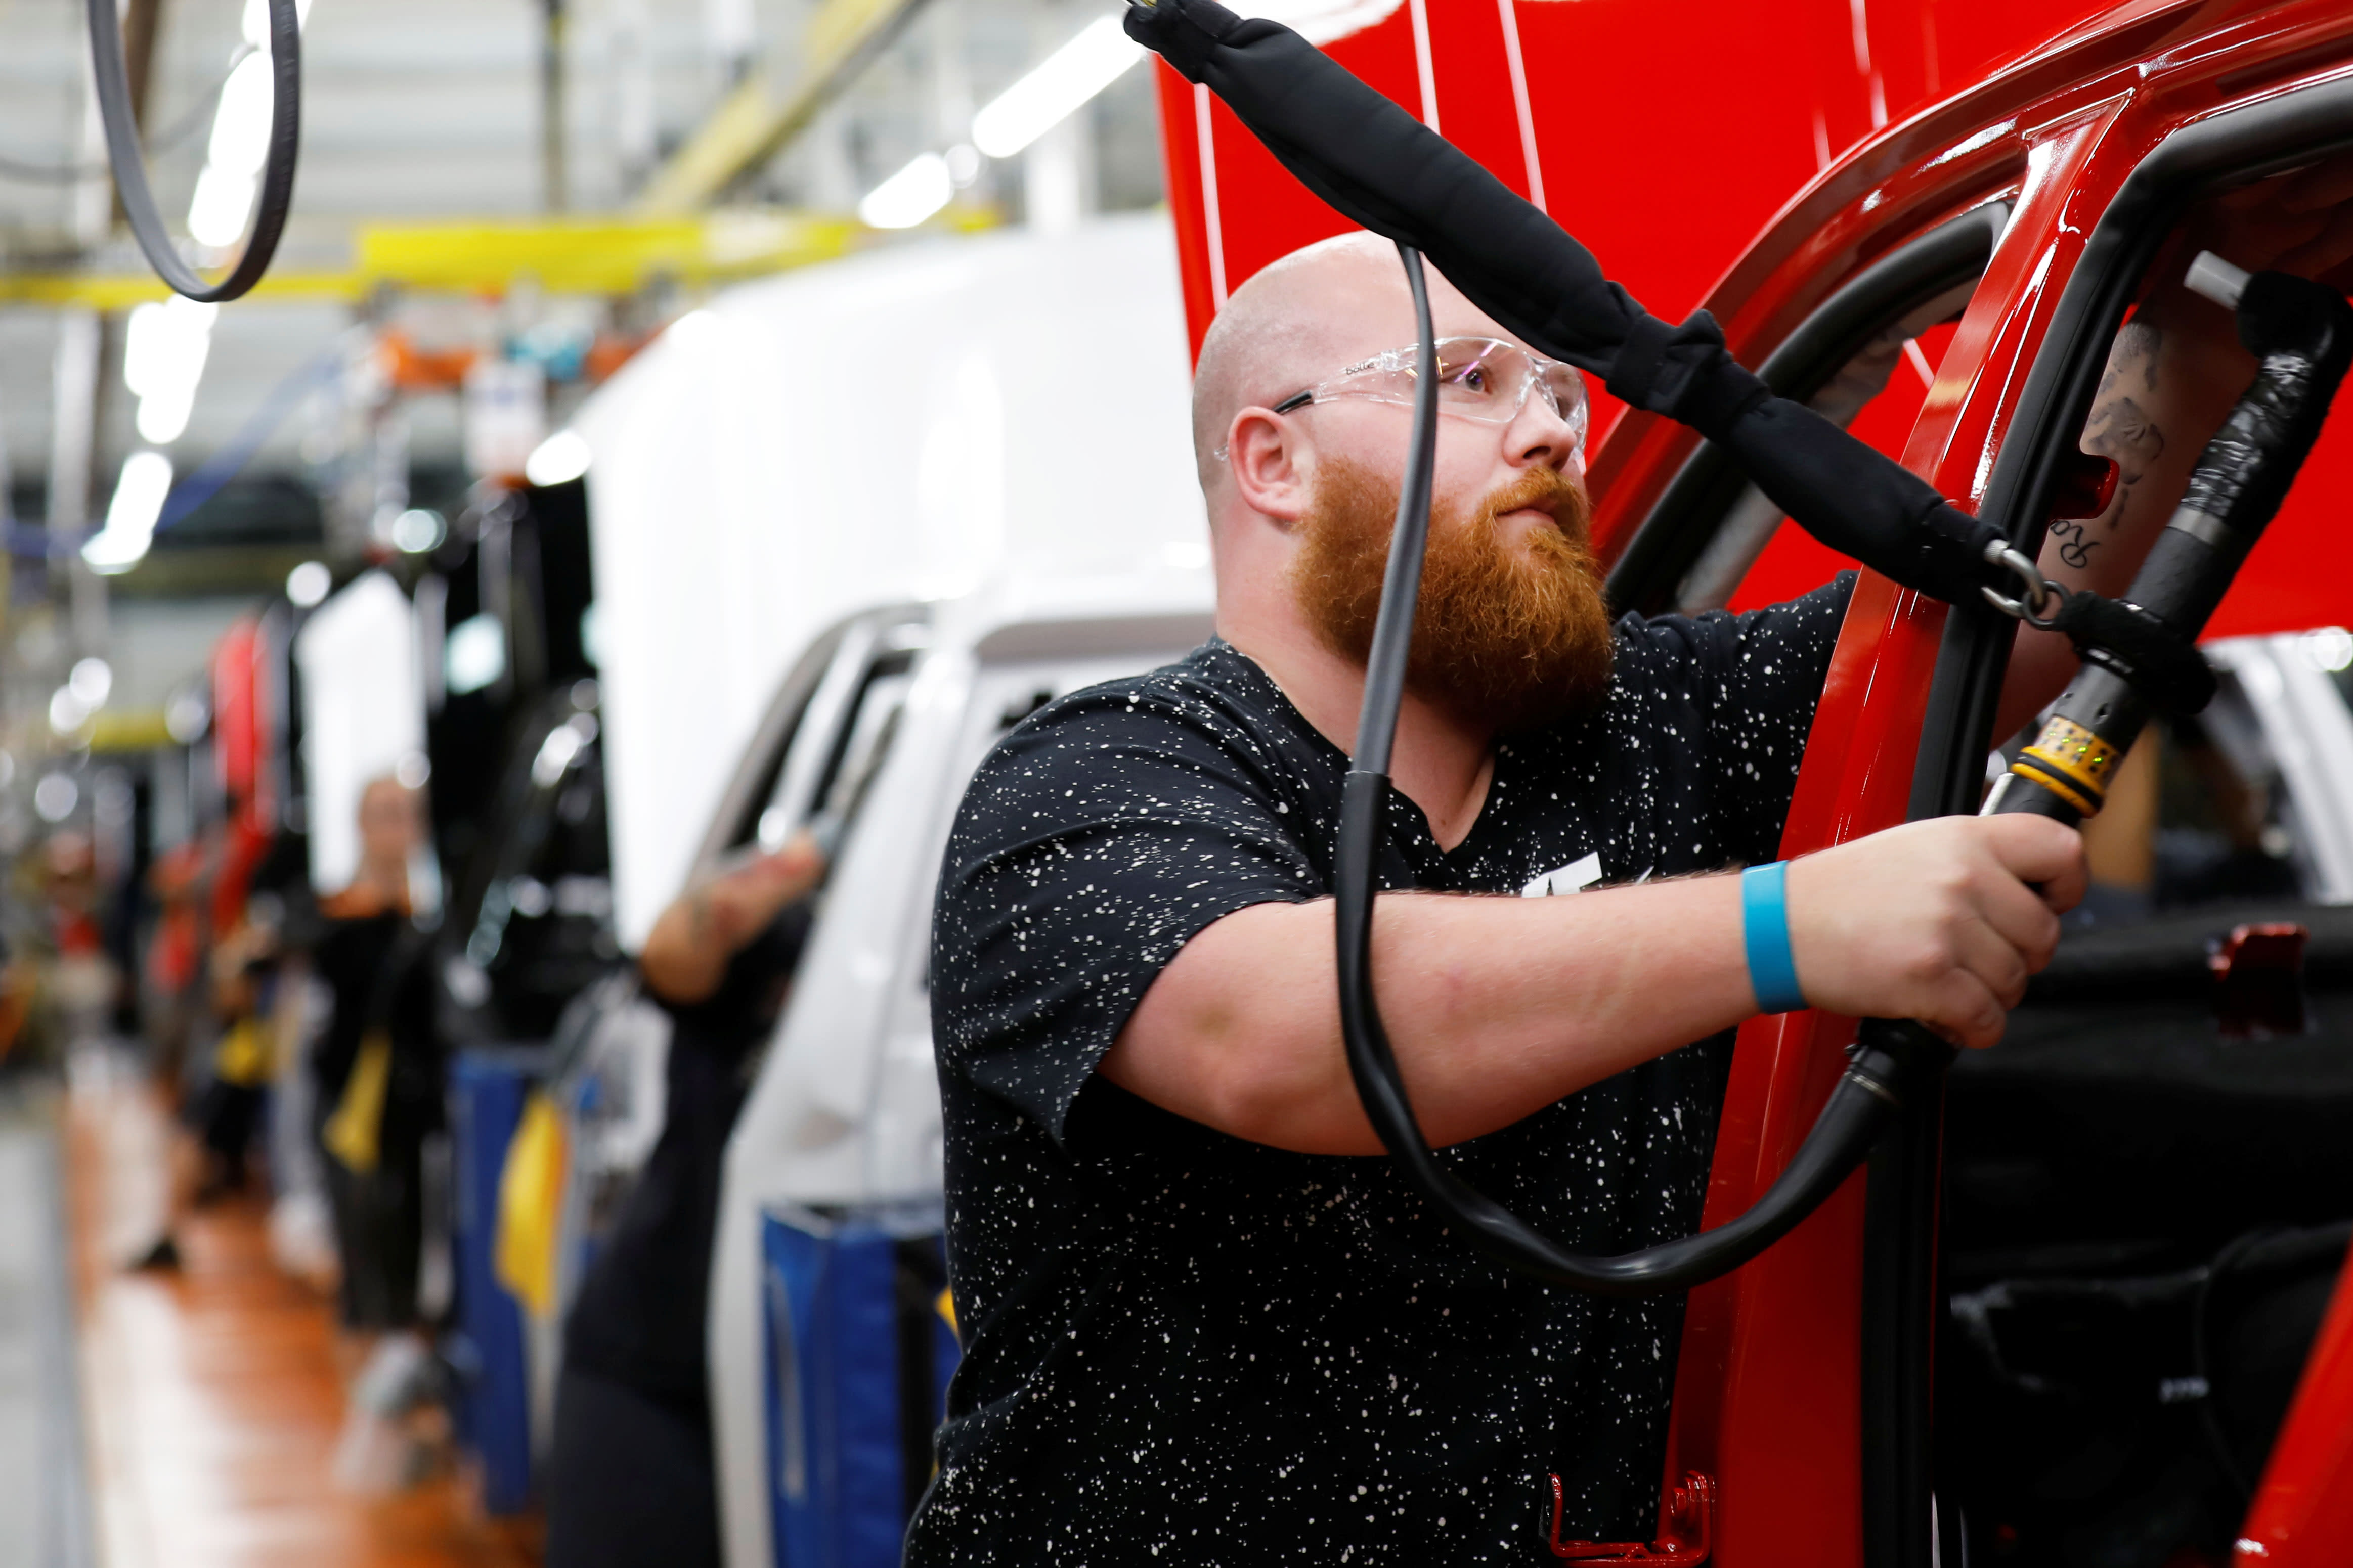 Job growth falls short of expectations as August payrolls rise just 130,000